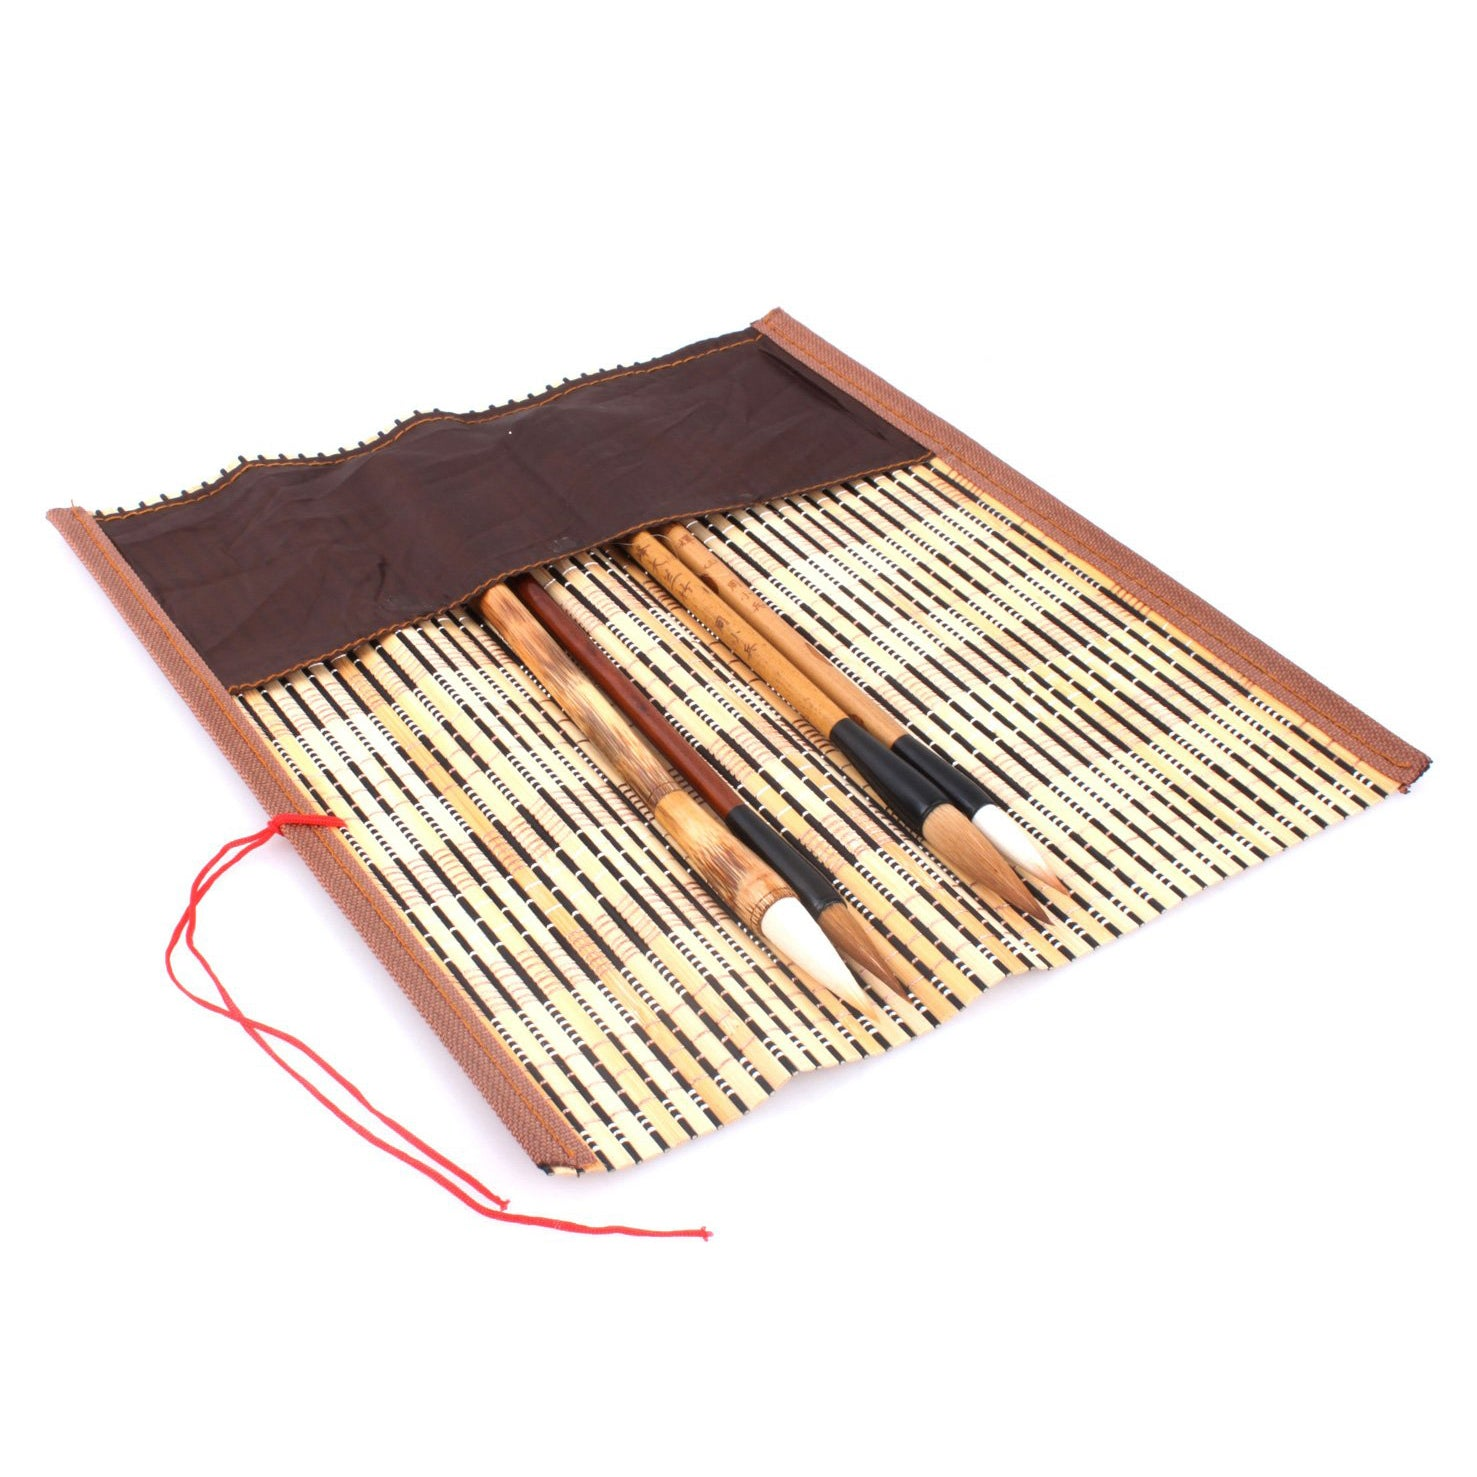 usage view of the bamboo brush wrap with pocket. This product is made of bamboo strips with a cloth pocket at one site where your brushes could be well positioned and protected inside